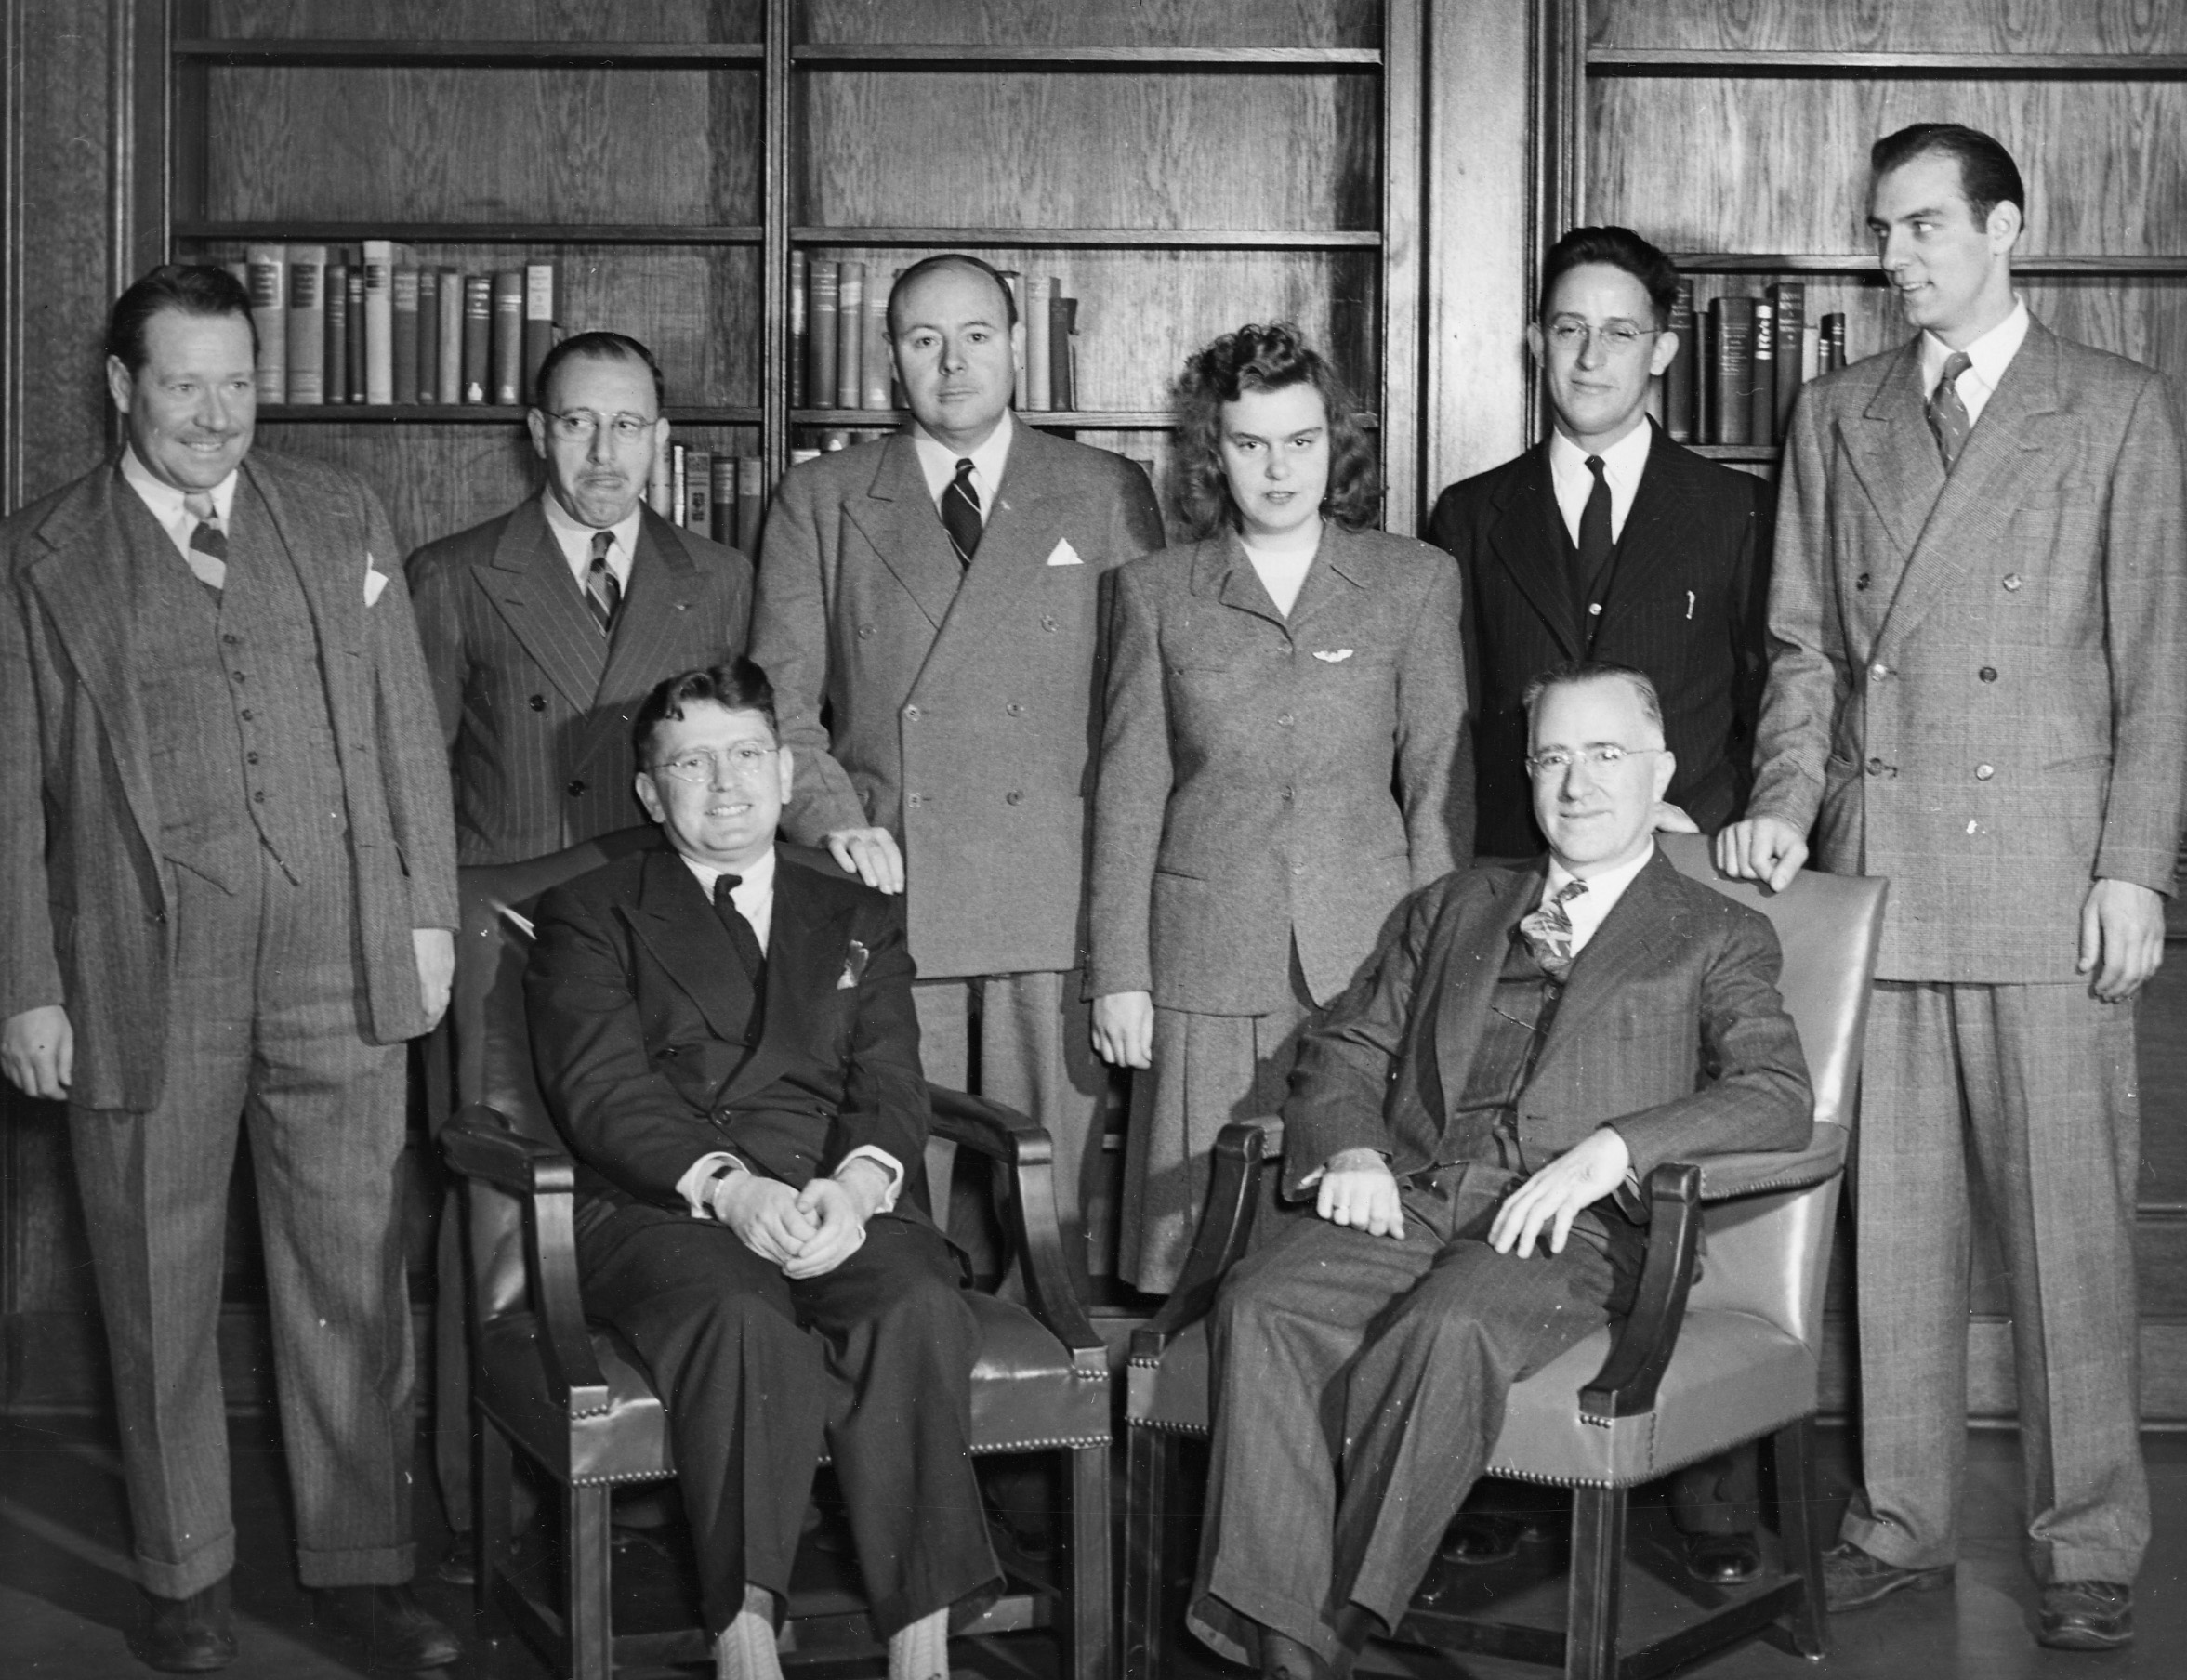 Laurence J. Ackerman (seated left) served as the first School of Business dean from 1941–1963.